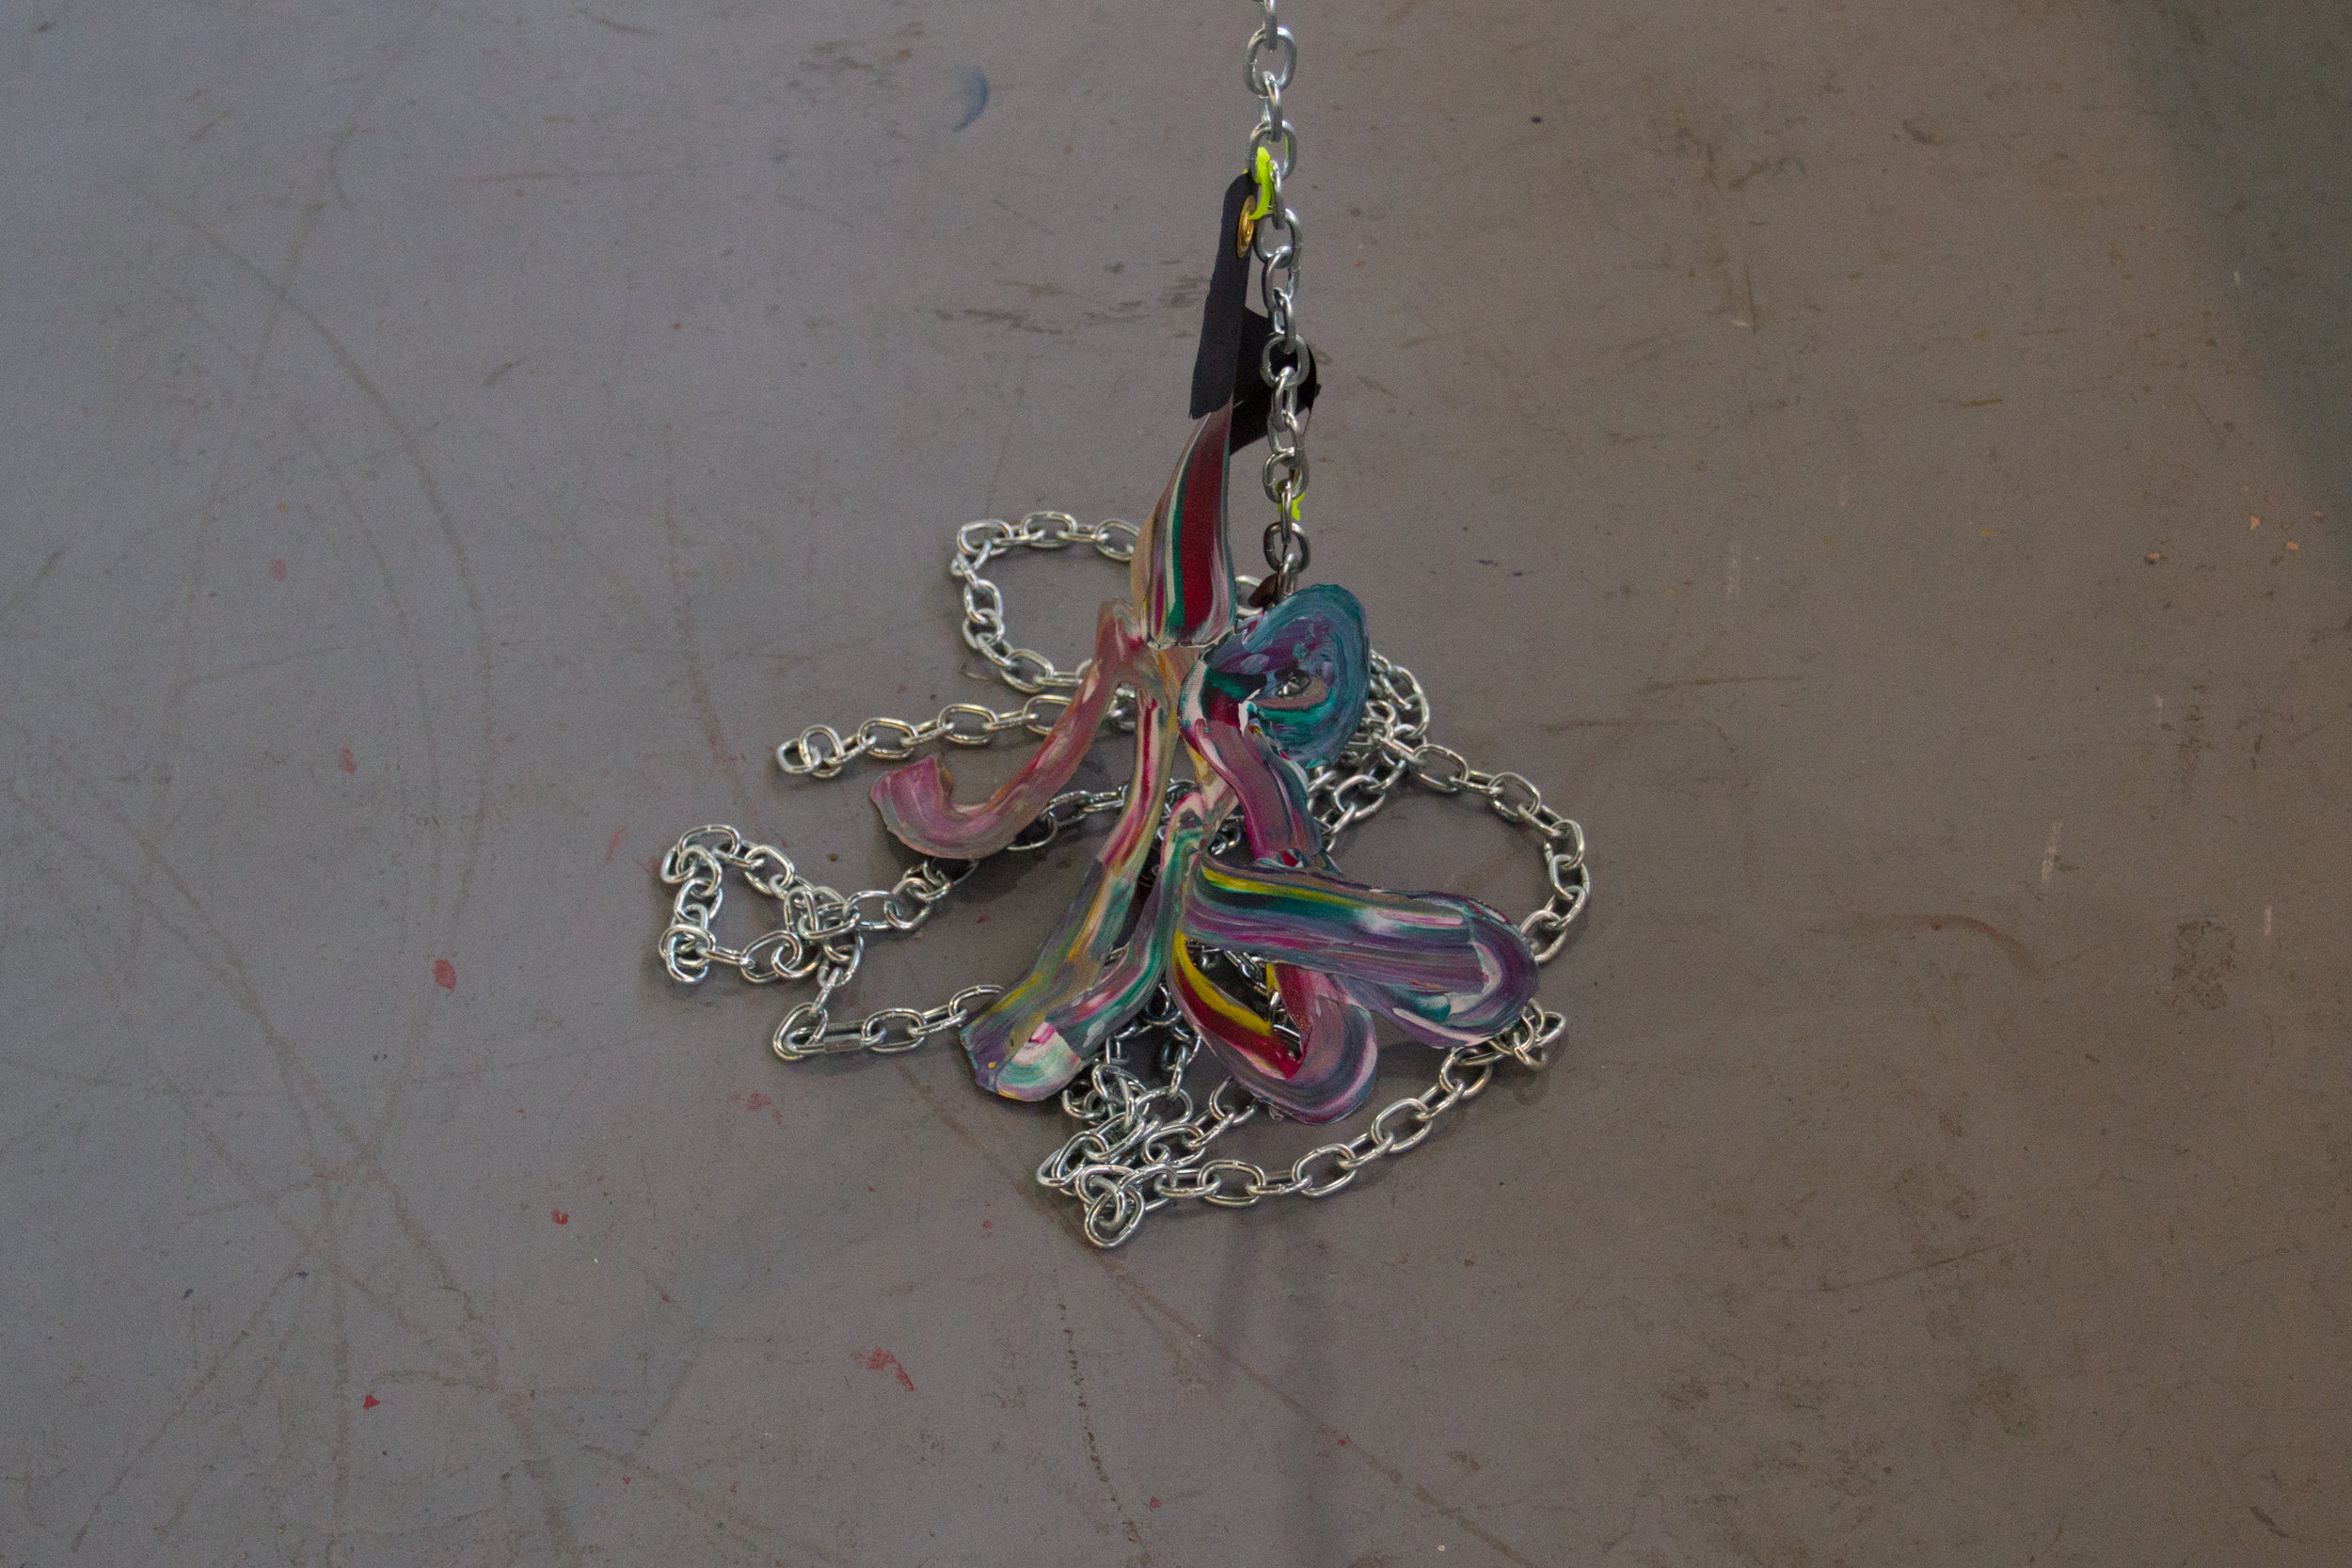 PaintingHung  acrylic on cut canvas, zip-ties, & chain  dimensions variable   2016